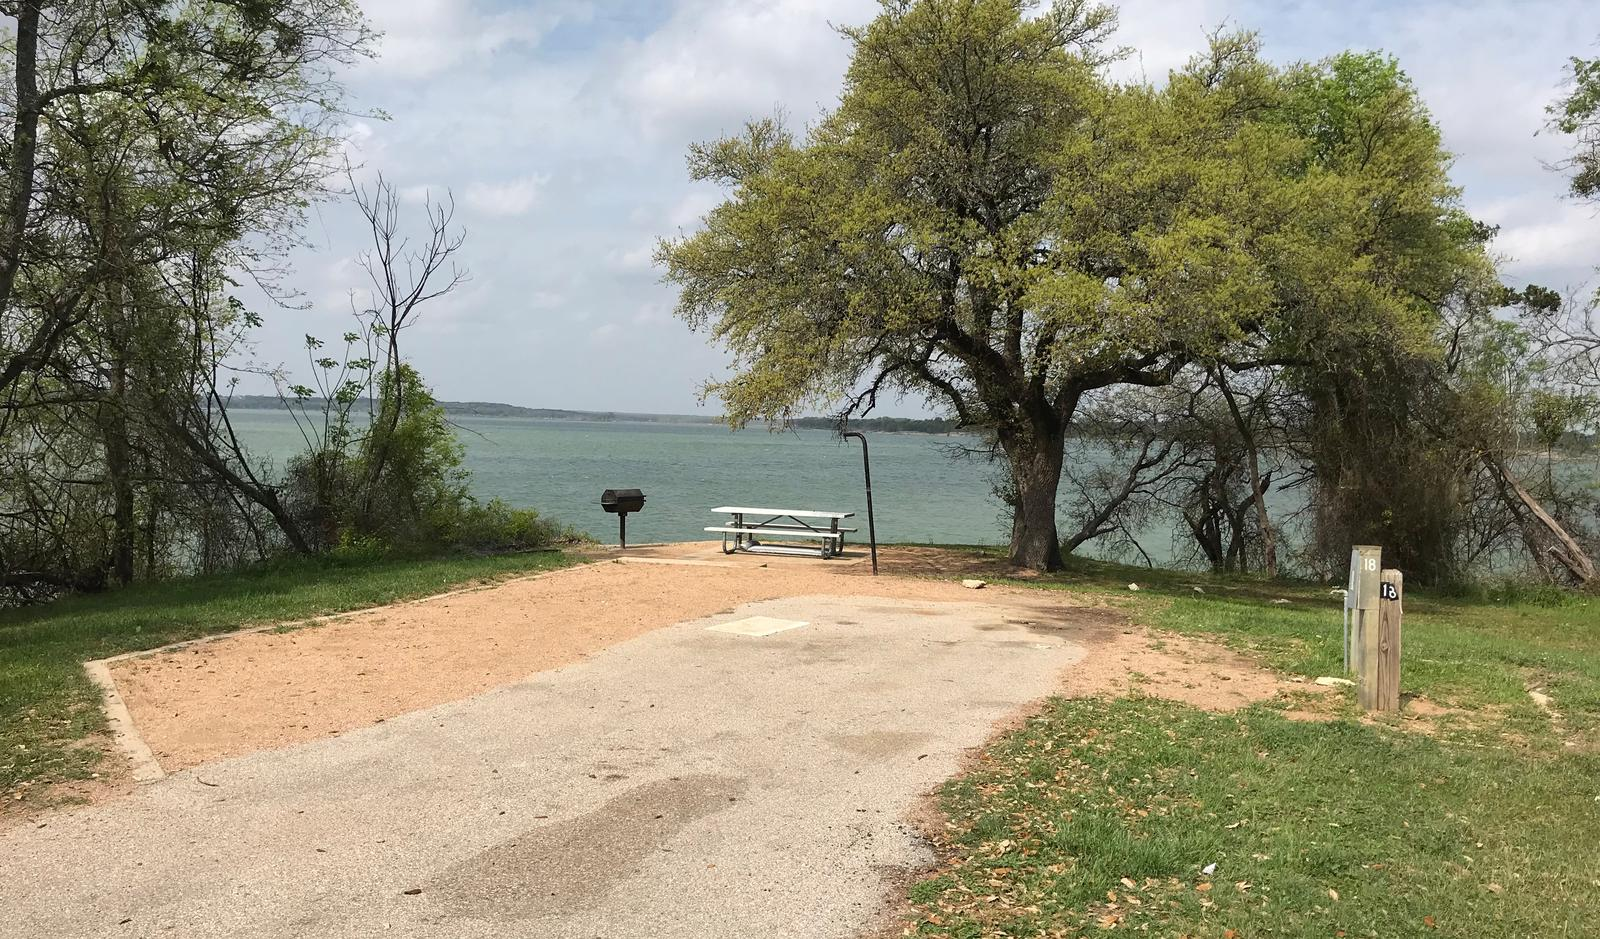 RV site with picnic table, grill, fire ring, and great view of Waco Lake